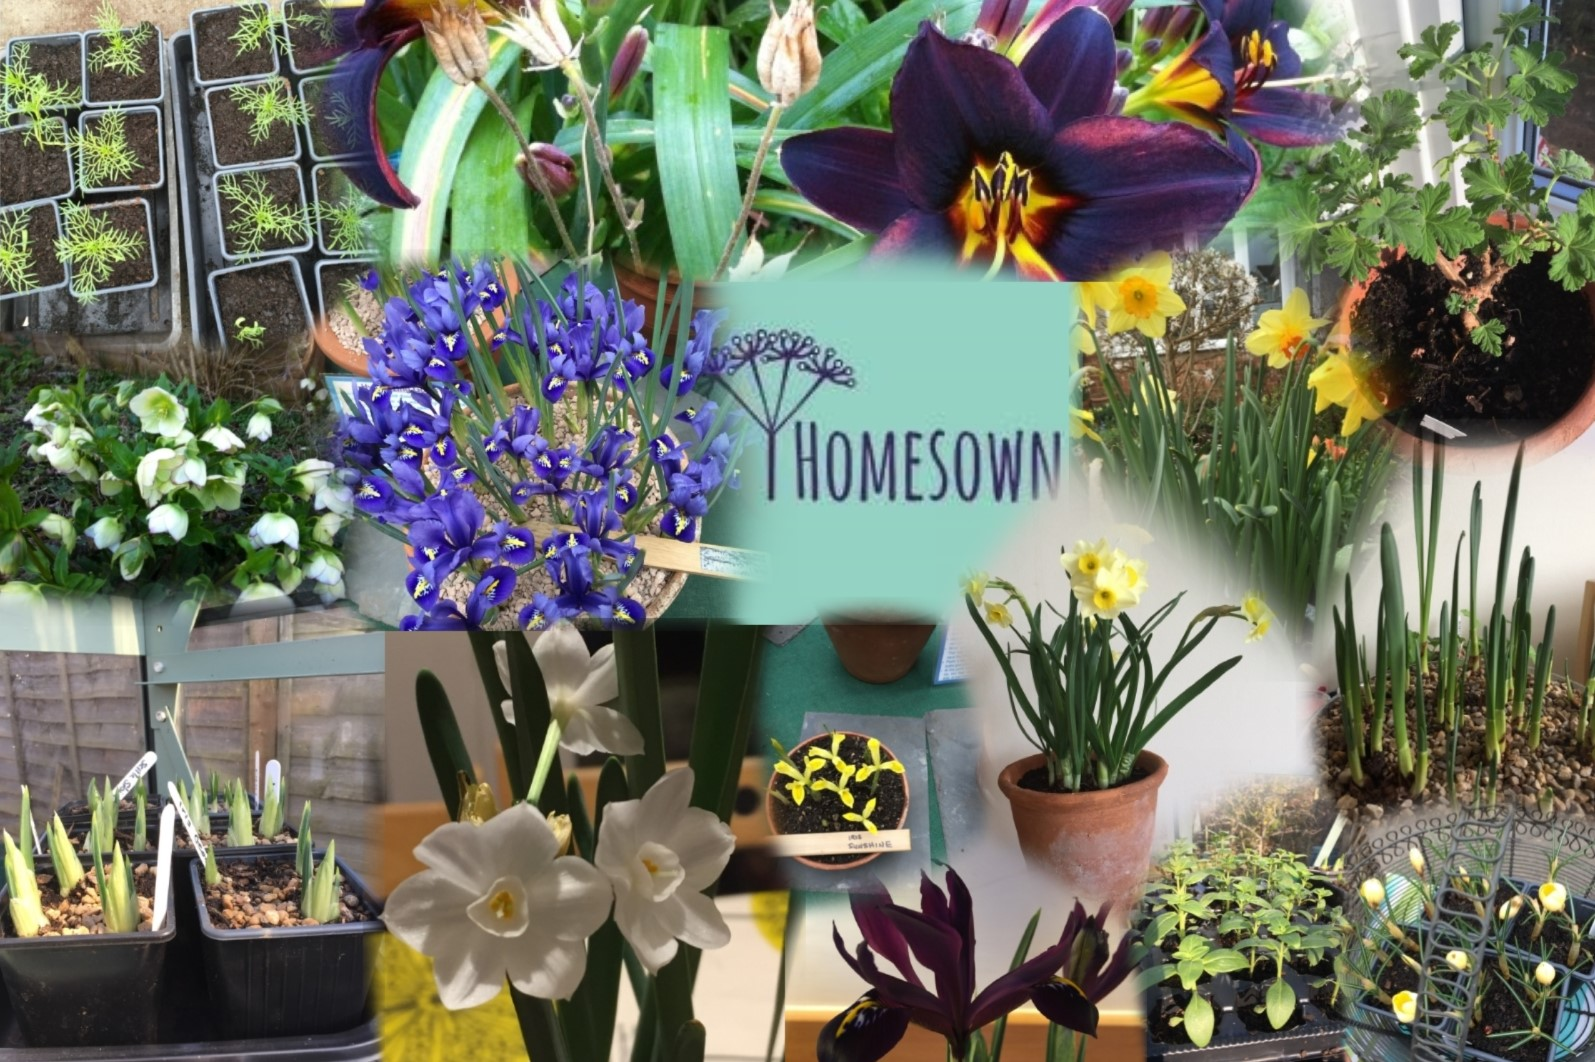 Homesown Collage